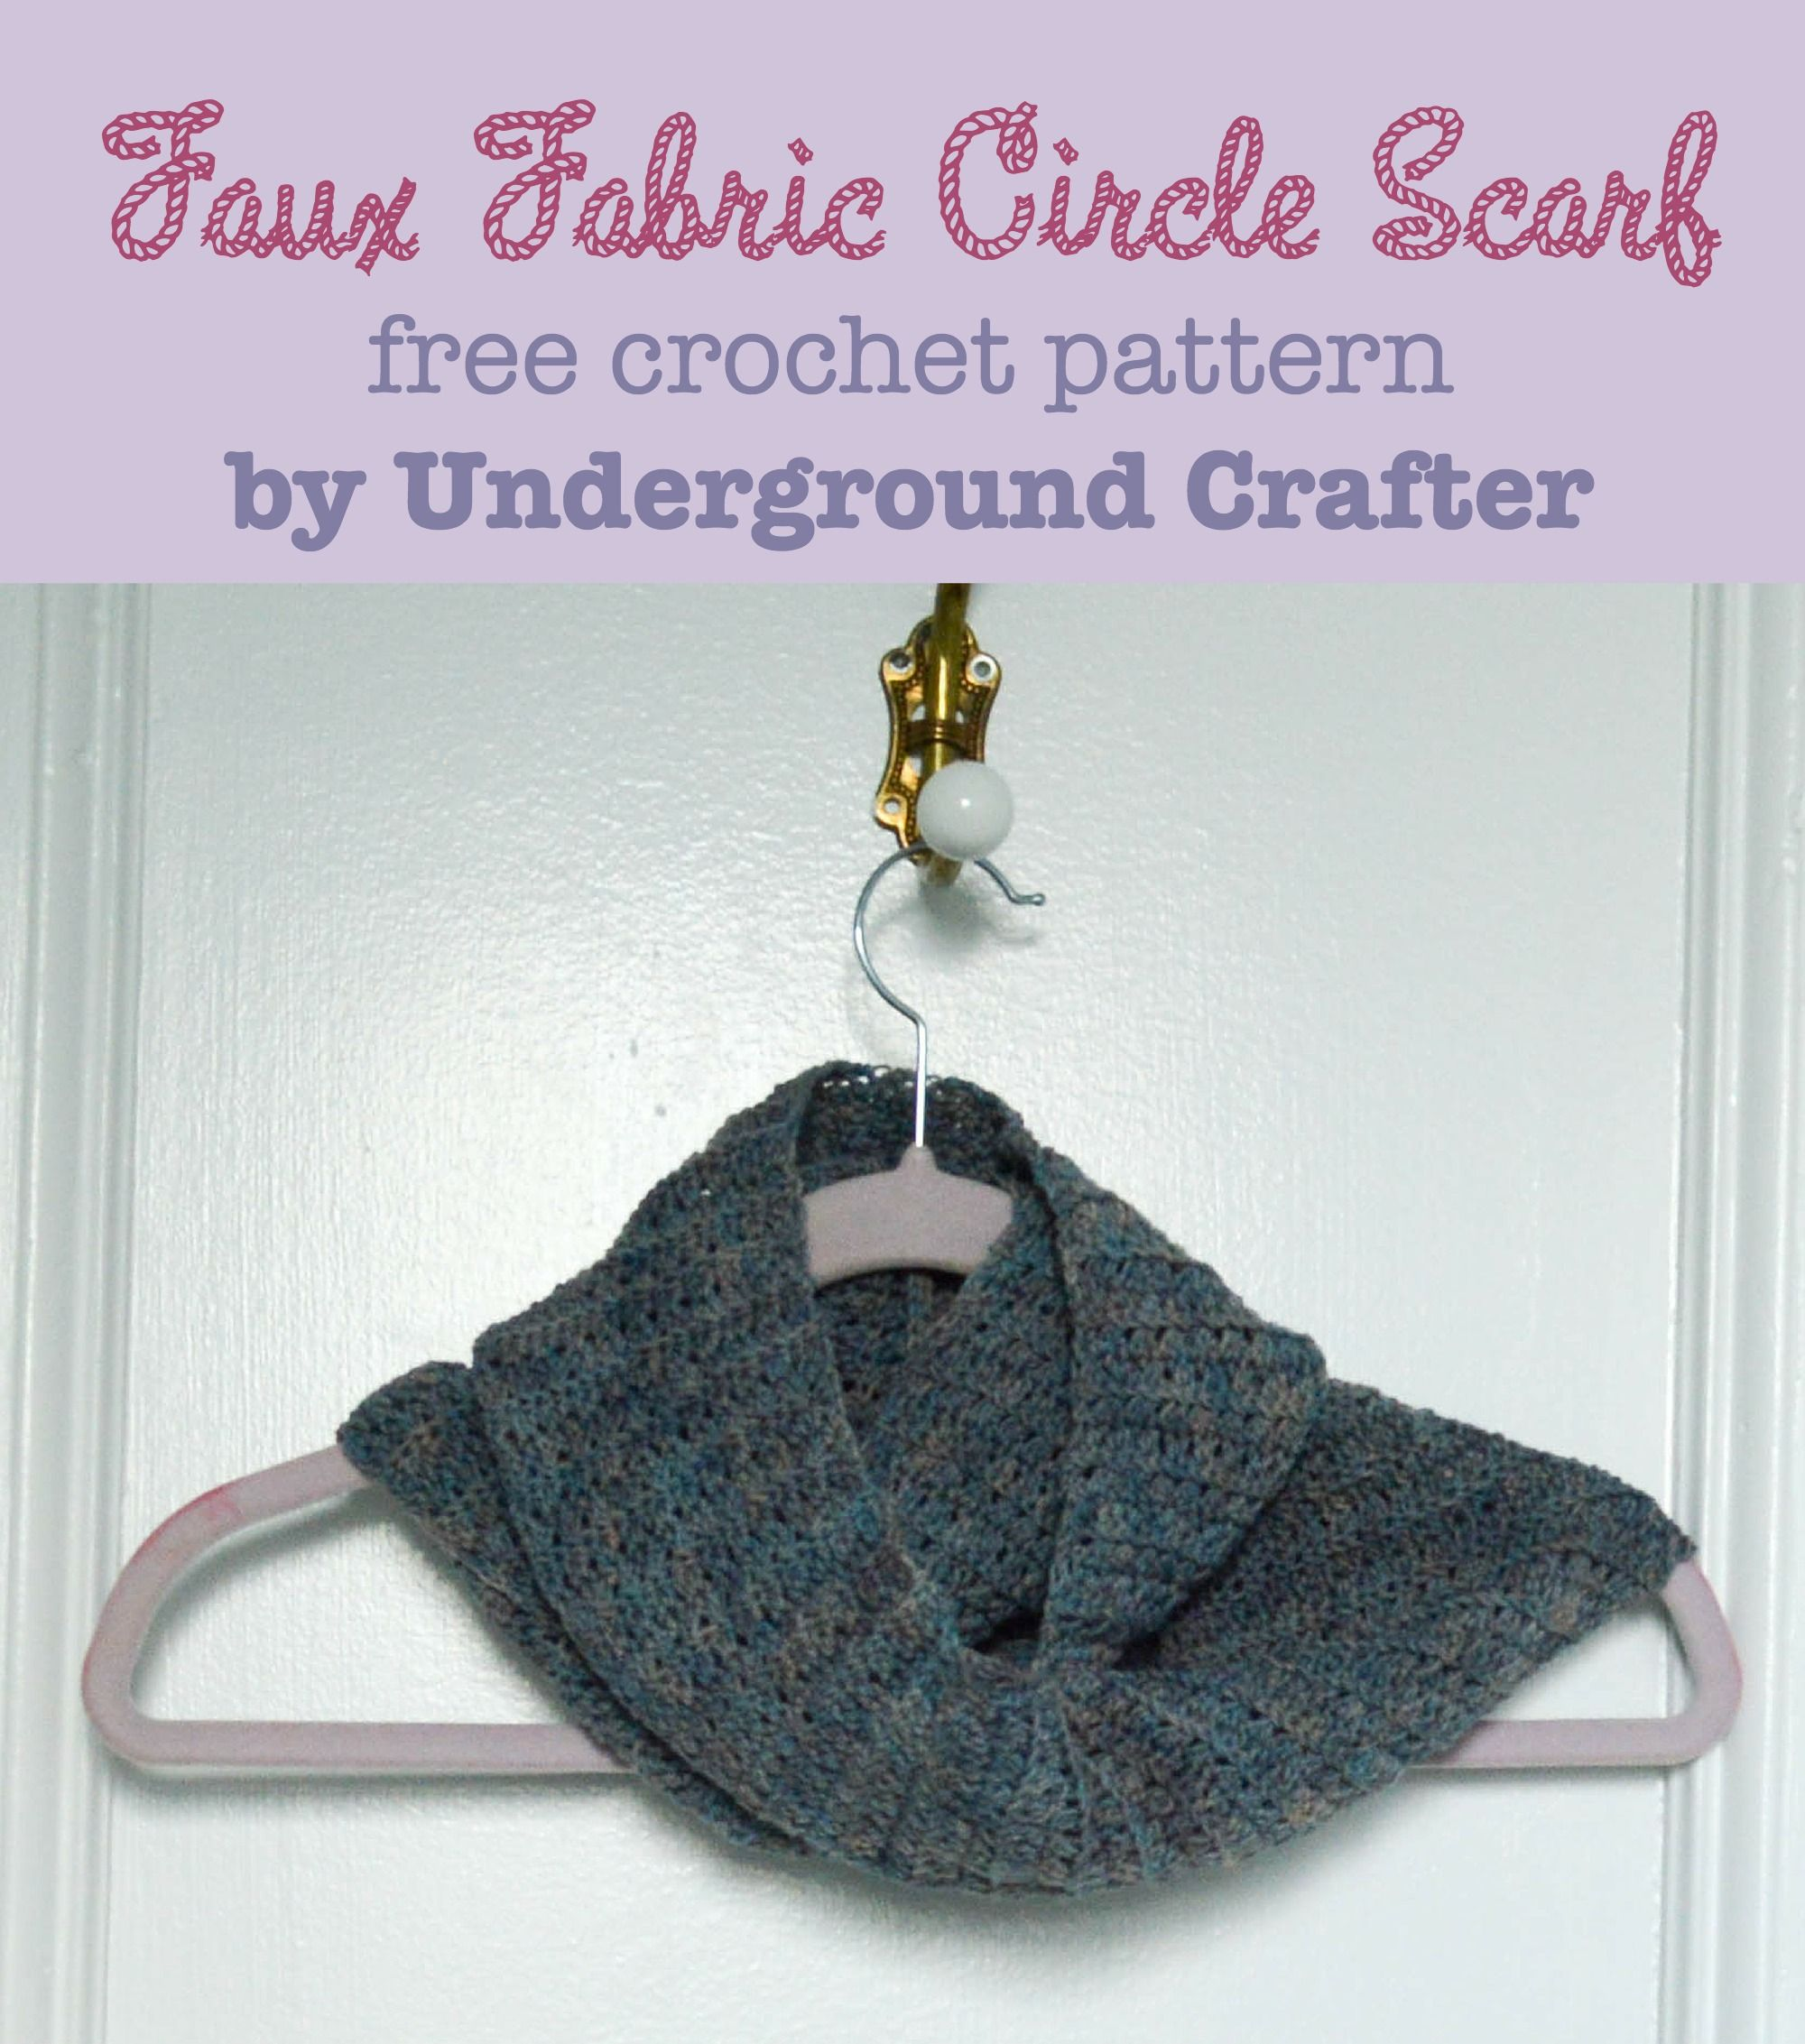 Faux Fabric Circle Scarf, free #crochet pattern | Tejido